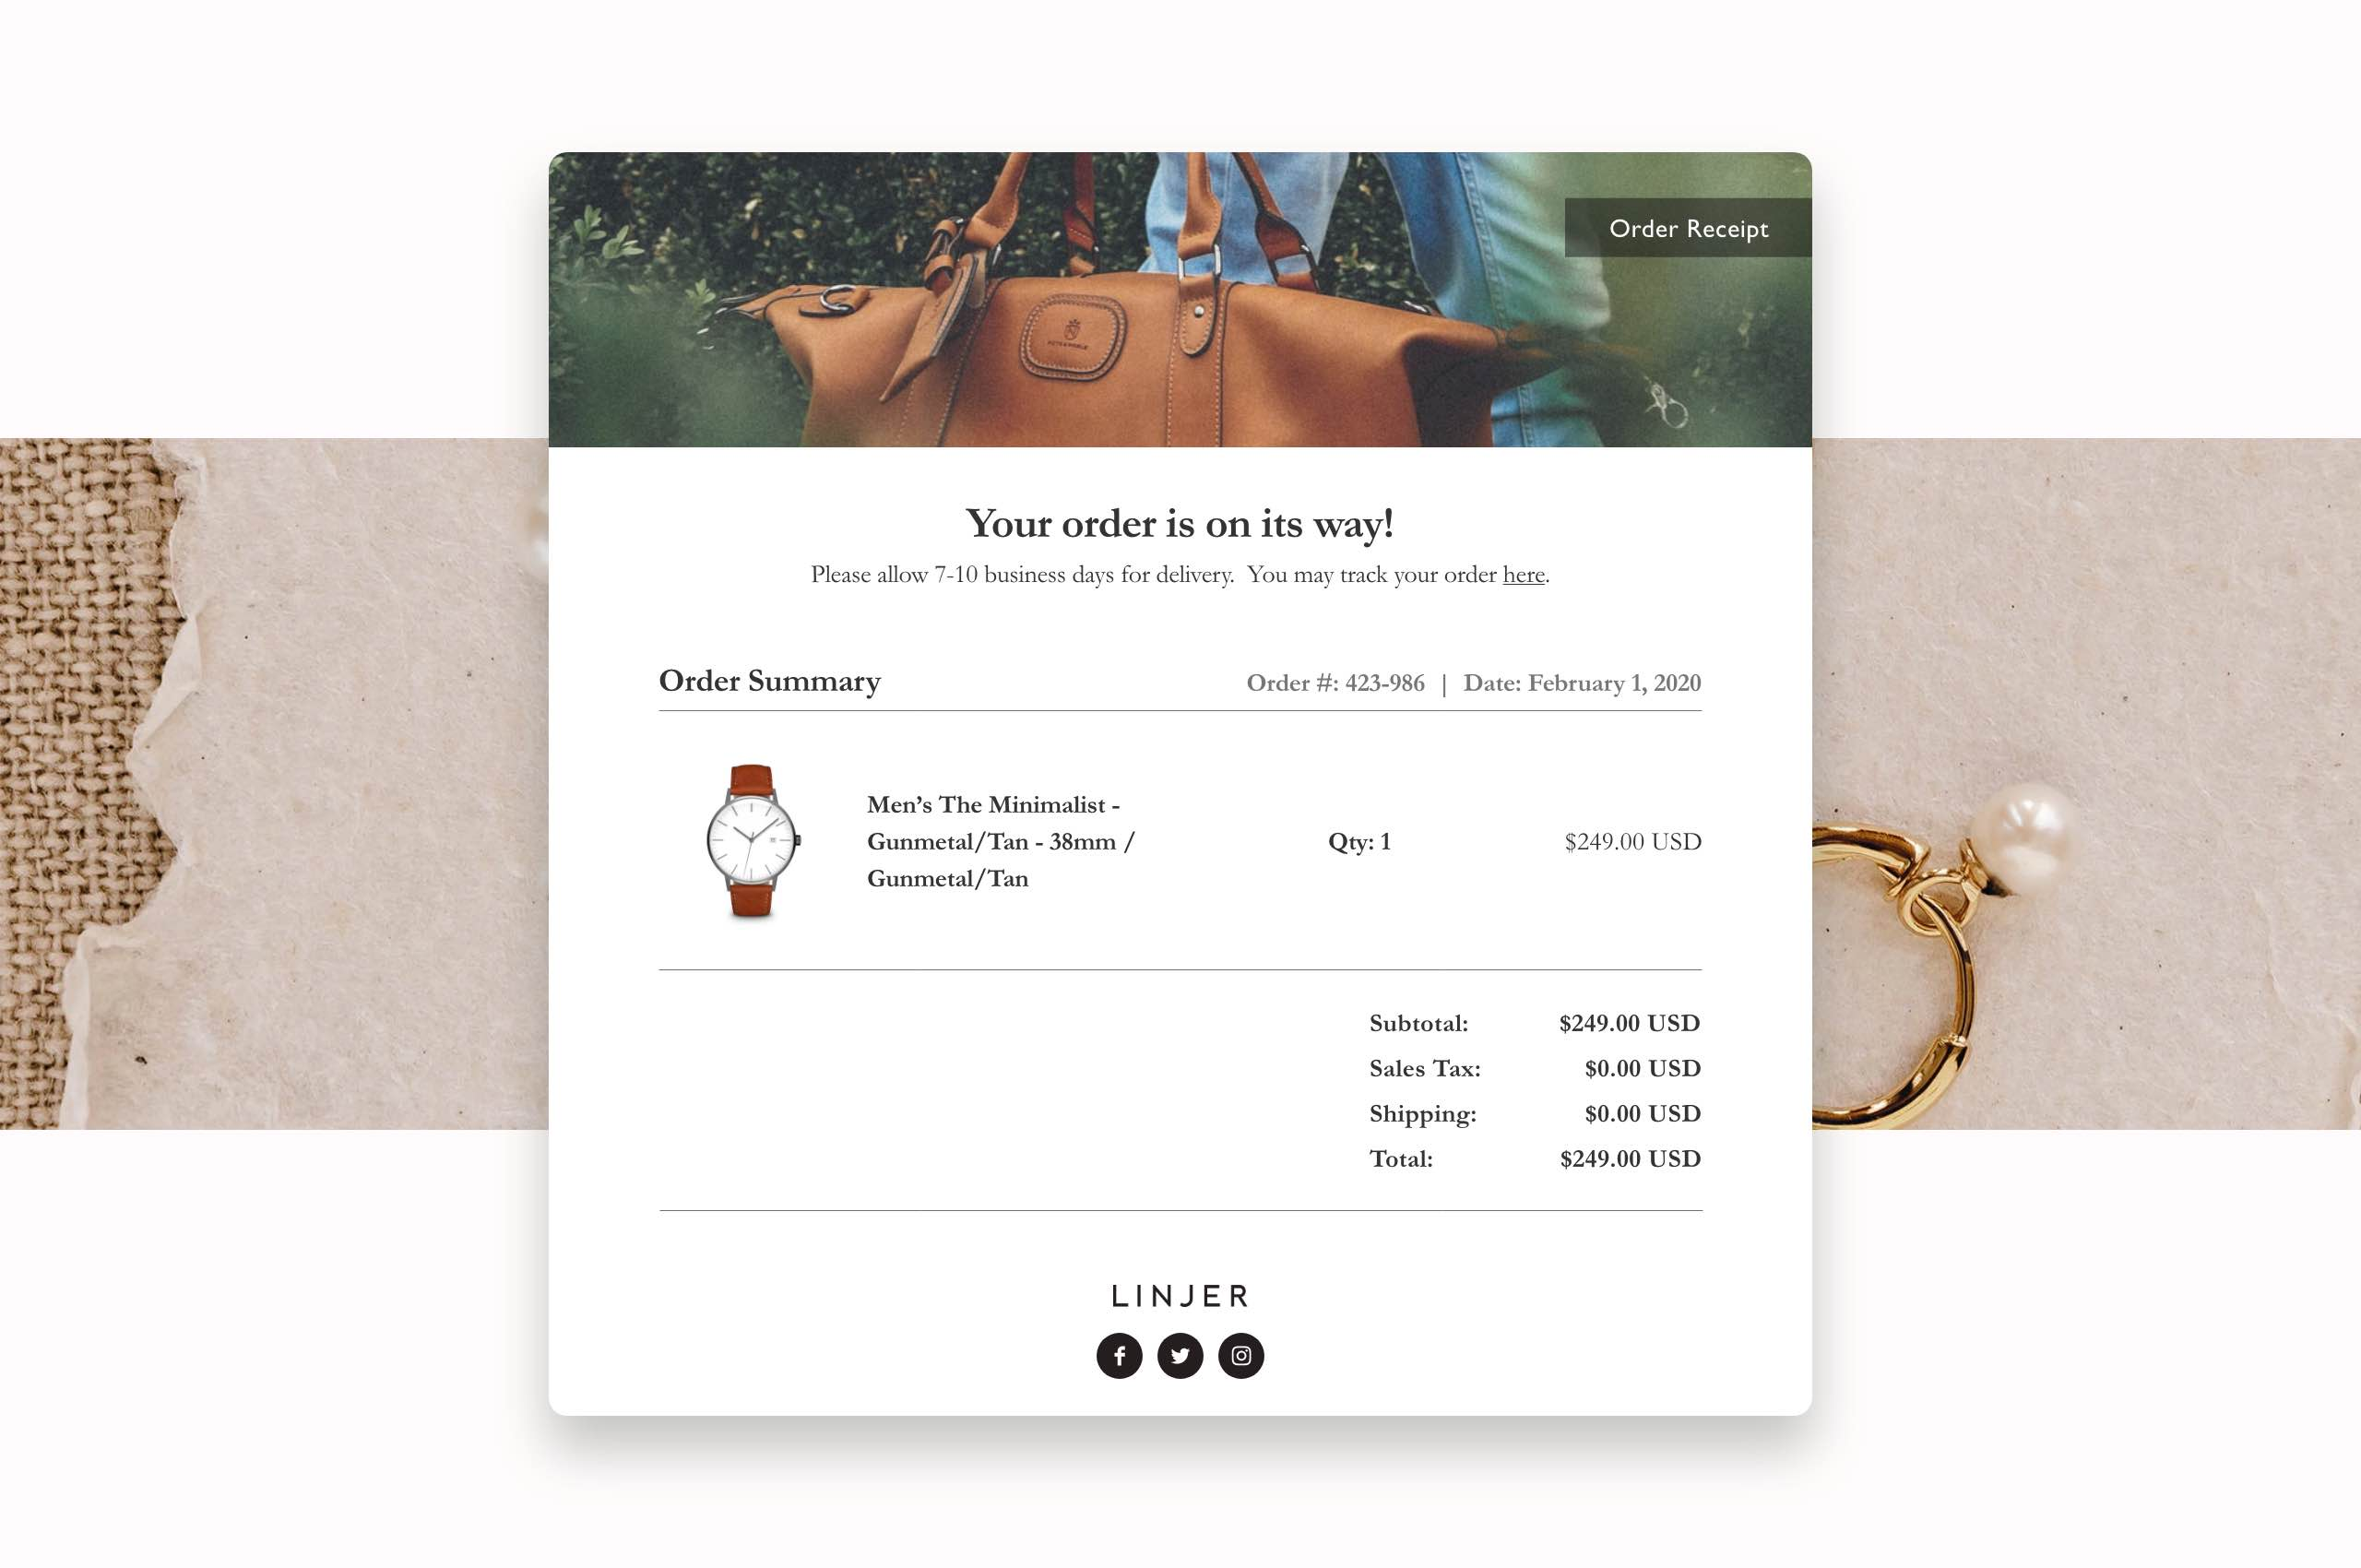 Daily UI 17 - Email Receipt for Linjer Ecommerce